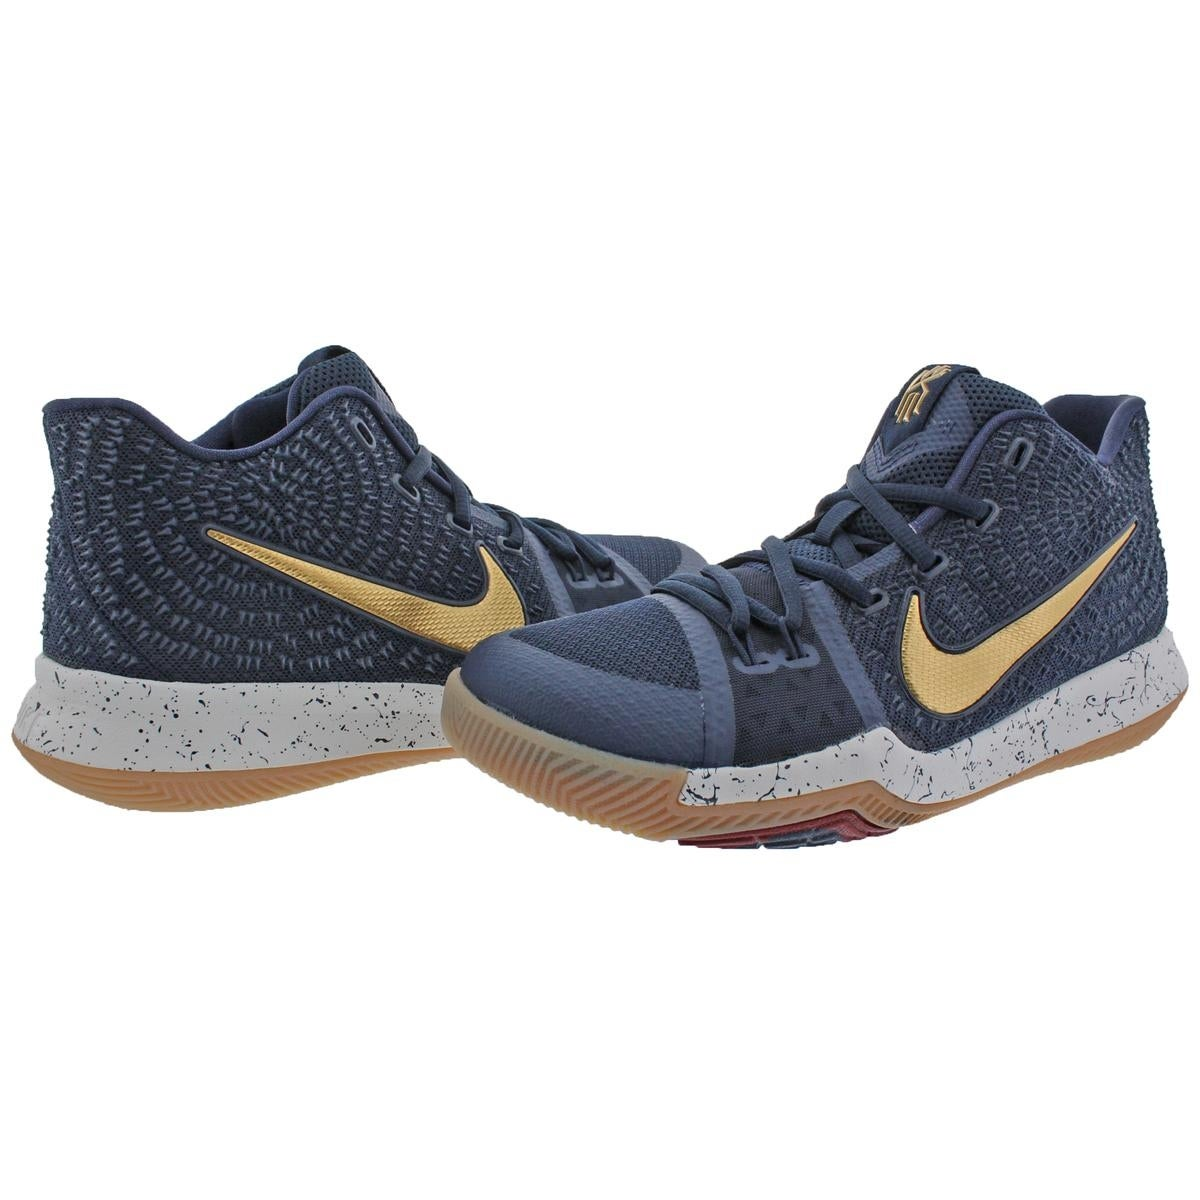 classic fit 2dafa 0556b Shop Nike Boys Kyrie 3 Basketball Shoes Colorblock Mids - Ships To Canada -  Overstock - 22025161